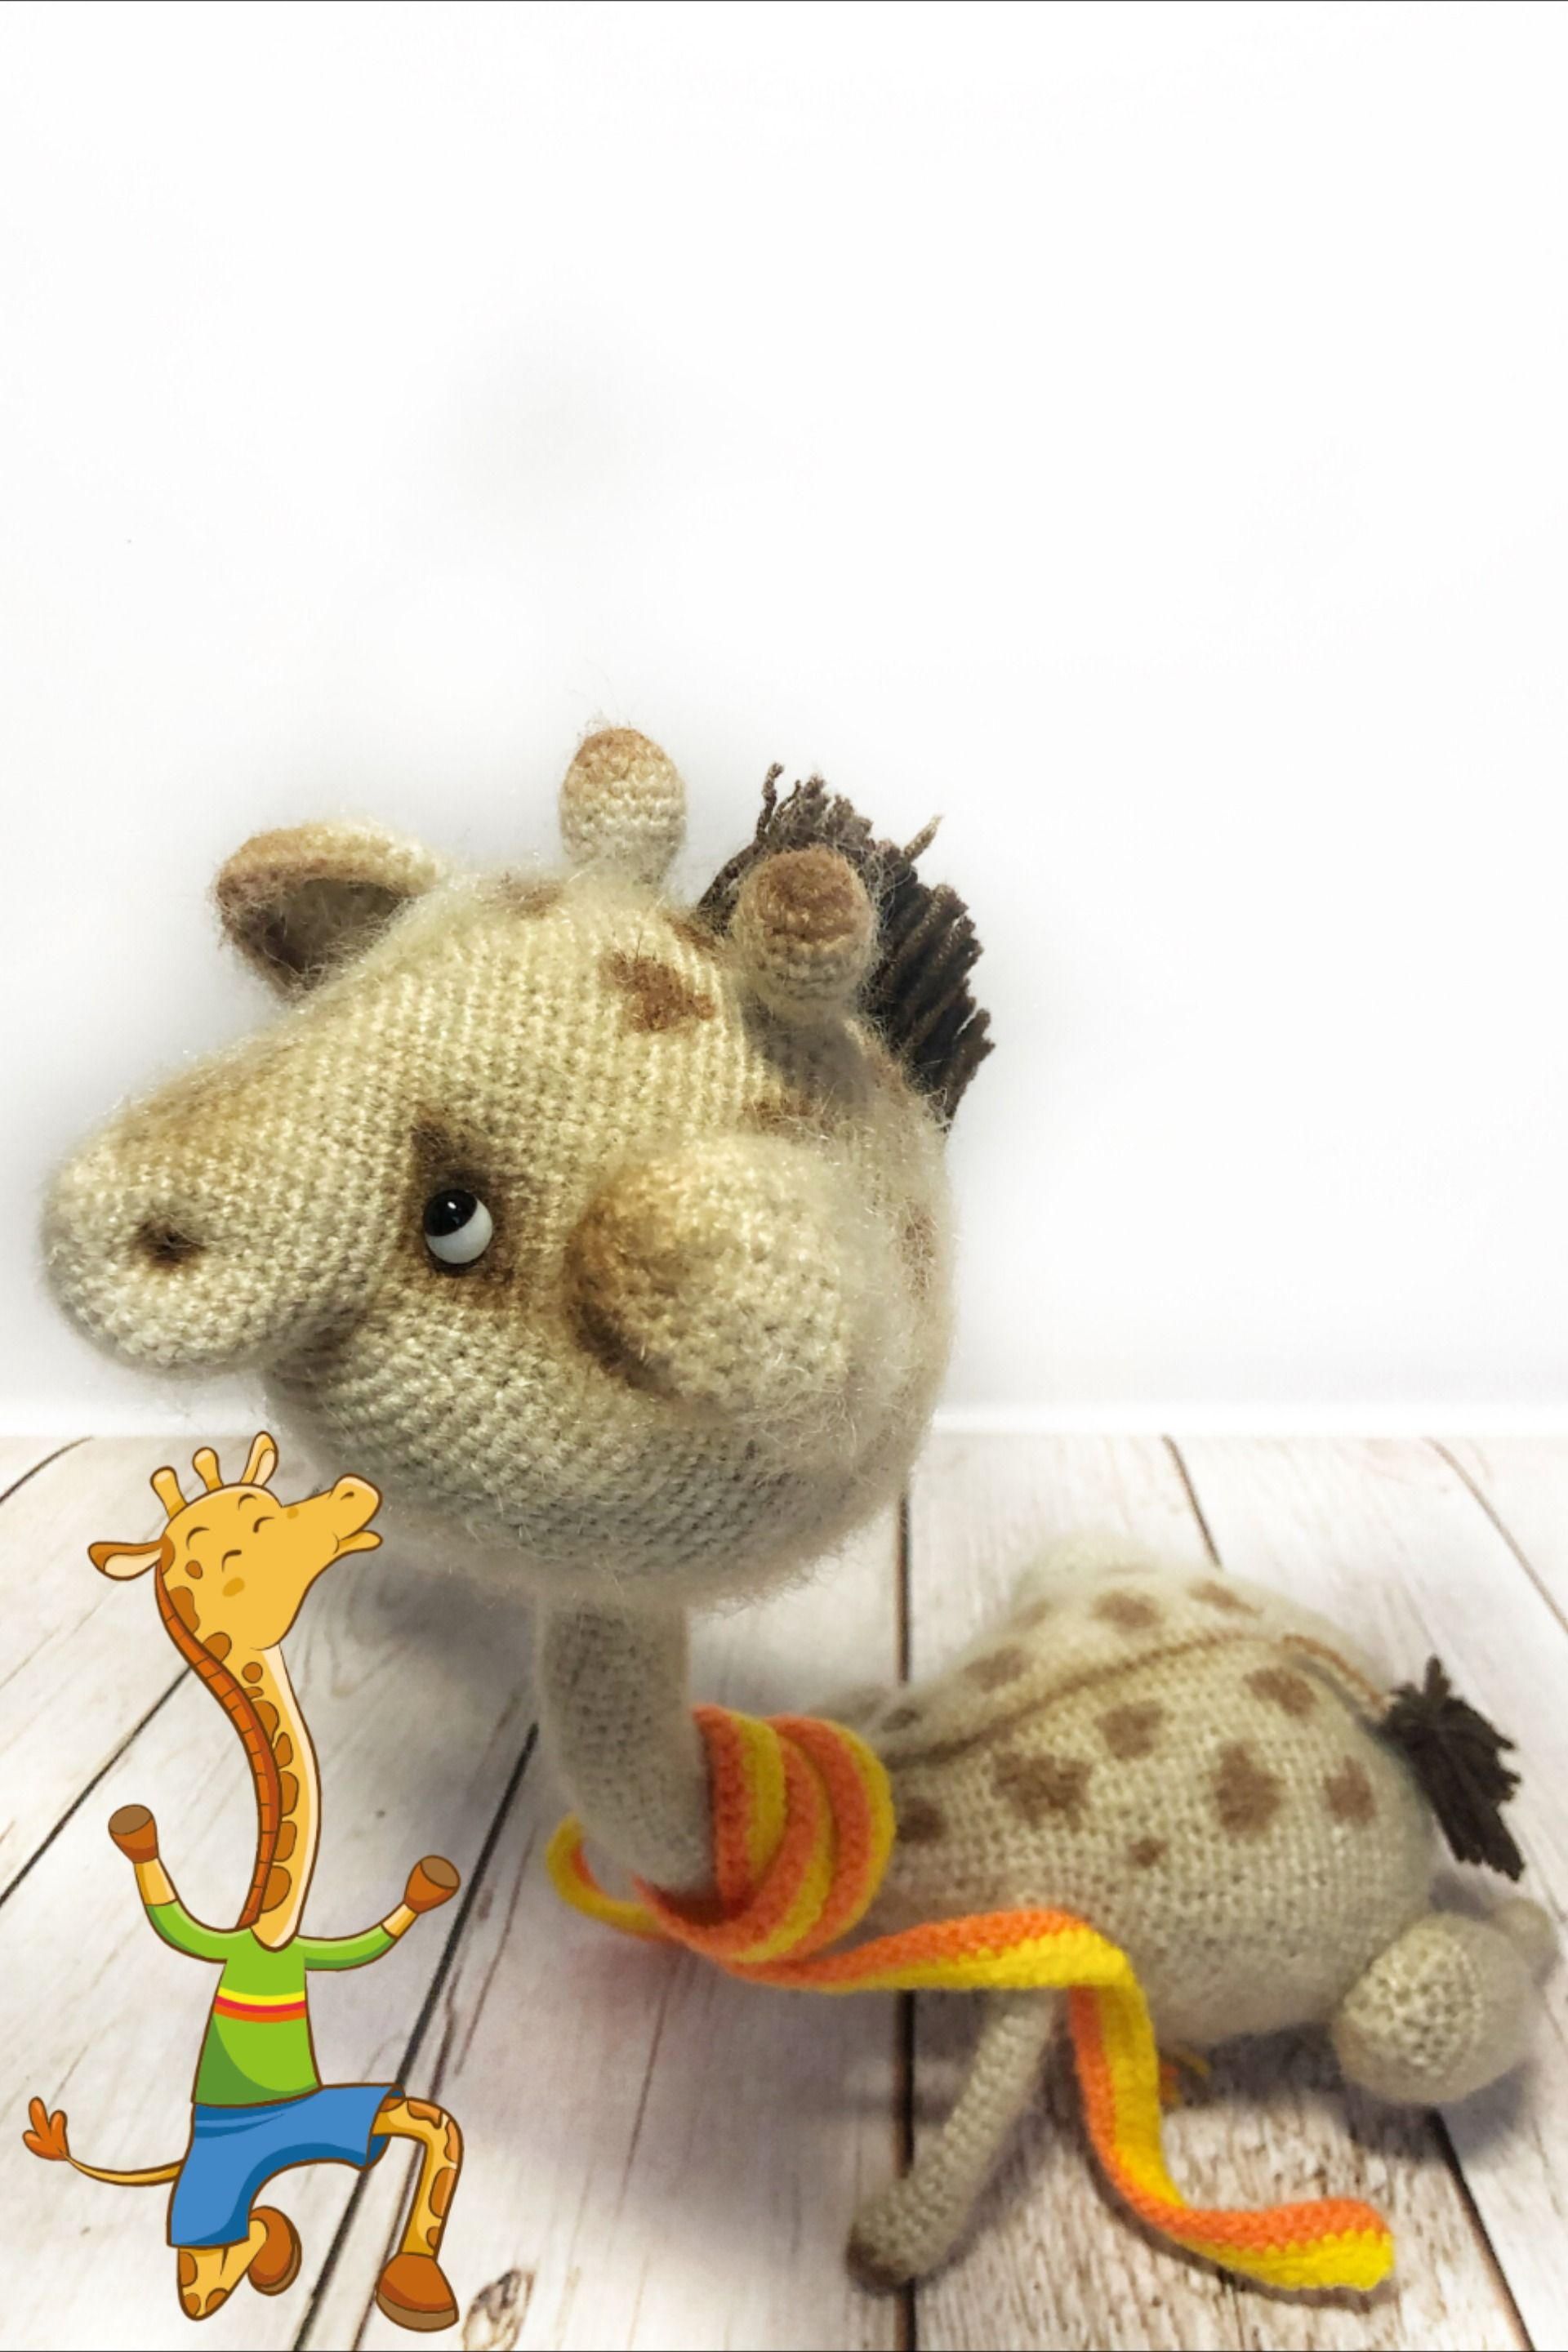 Crochet Toy Amigurumi Giraffe Handmade Home Decor Animal Jungle Stuffed Toy Mohair Giraffe Gift For Friends Unique Toy Christmas With Images Unique Toys Crochet Toys Giraffe Toy